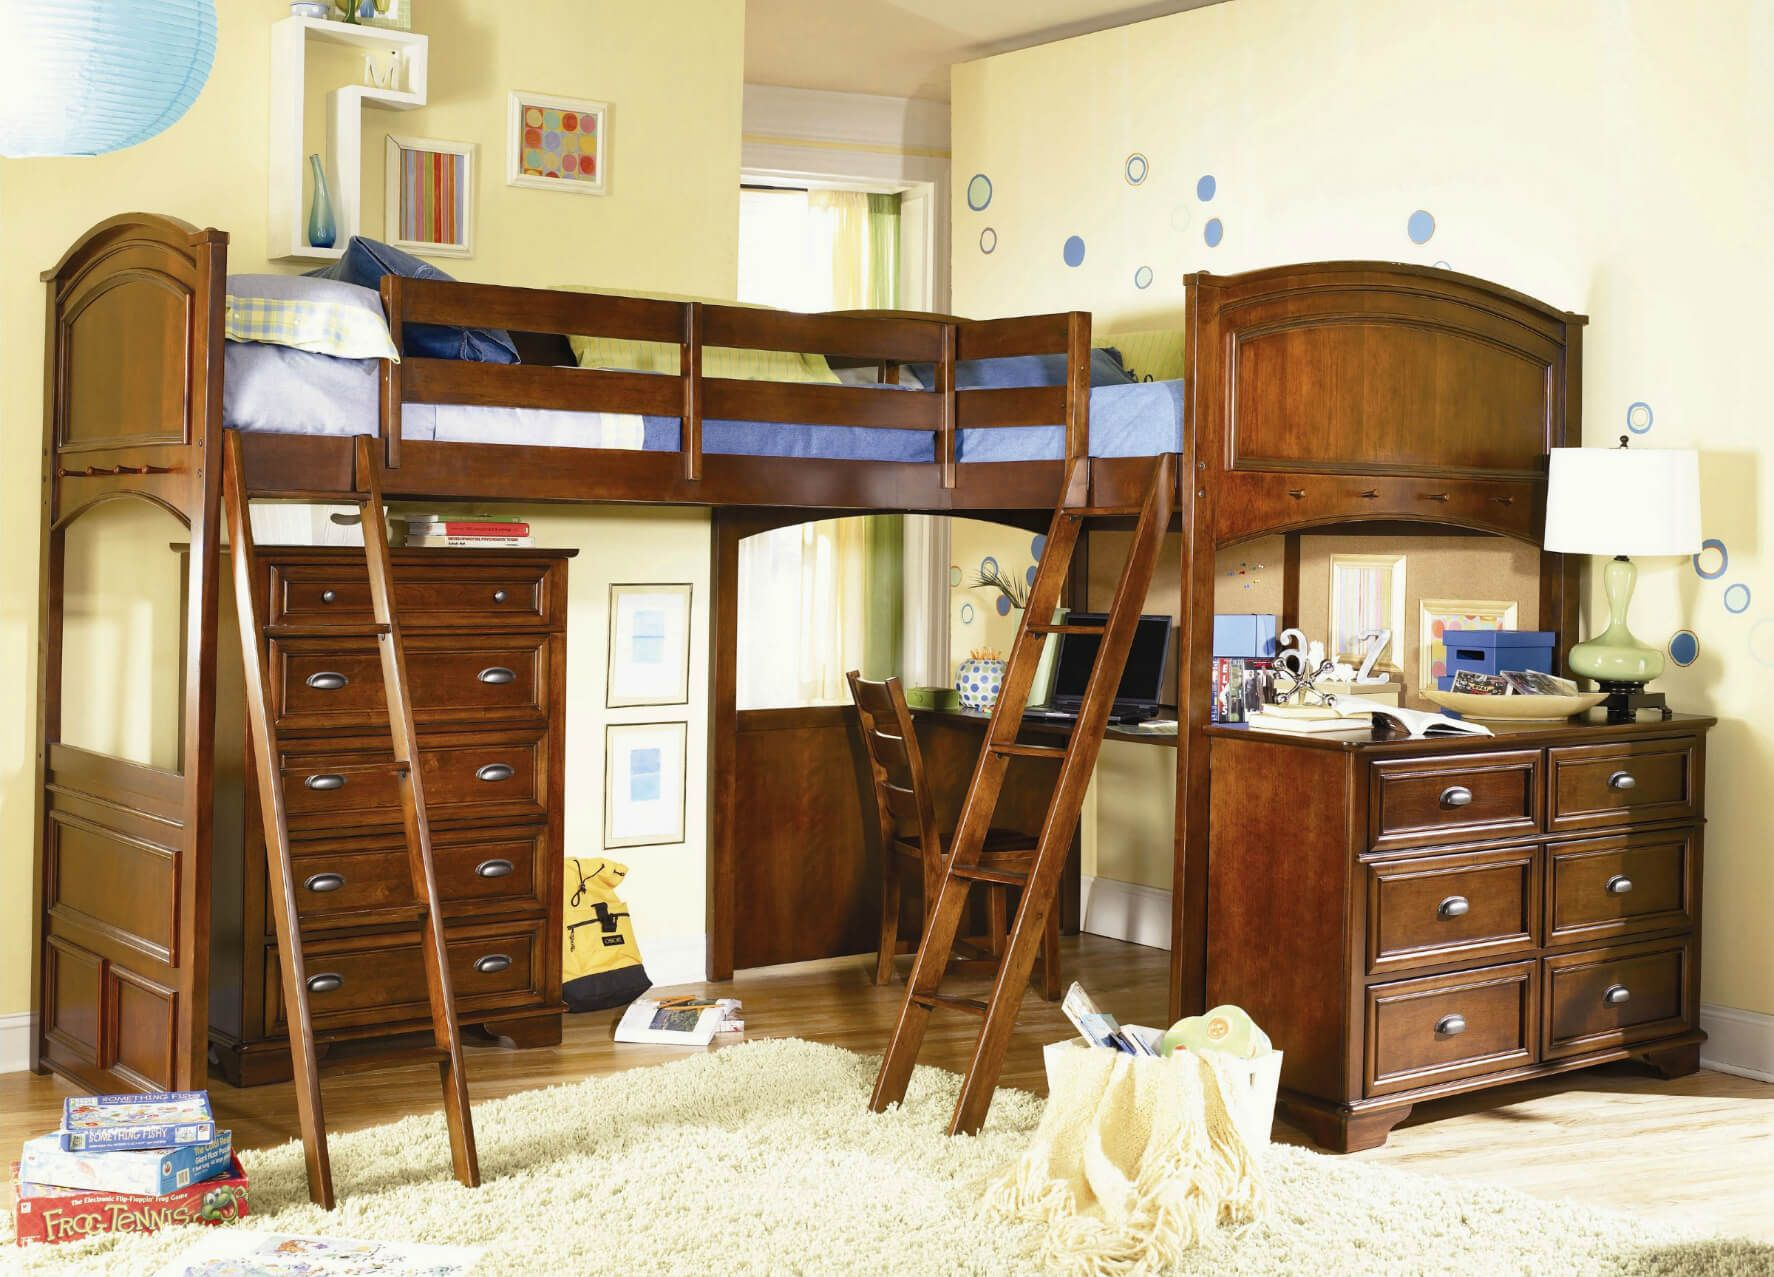 21 Top Wooden L Shaped Bunk Beds  WITH SPACE SAVING FEATURES. 21 Top Wooden L Shaped Bunk Beds  WITH SPACE SAVING FEATURES